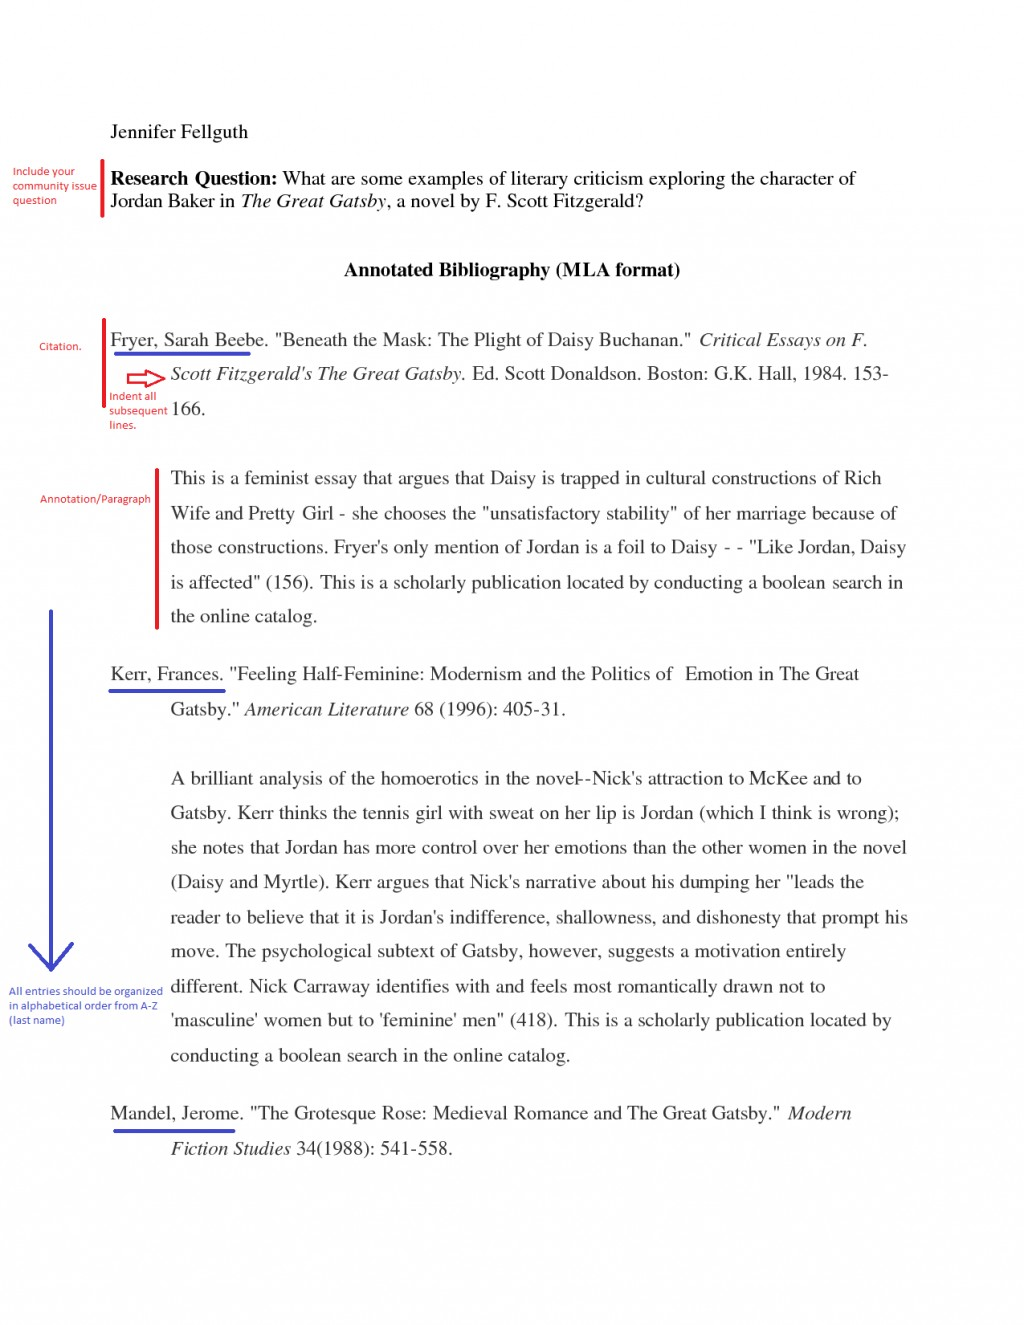 020 Mla Citation For Essay How To Cite Images In Format Did You Know Example Papernotatedbibsampleanno Parenthetical Citing Archaicawful An A Book 8th Edition Work Within Apa Large